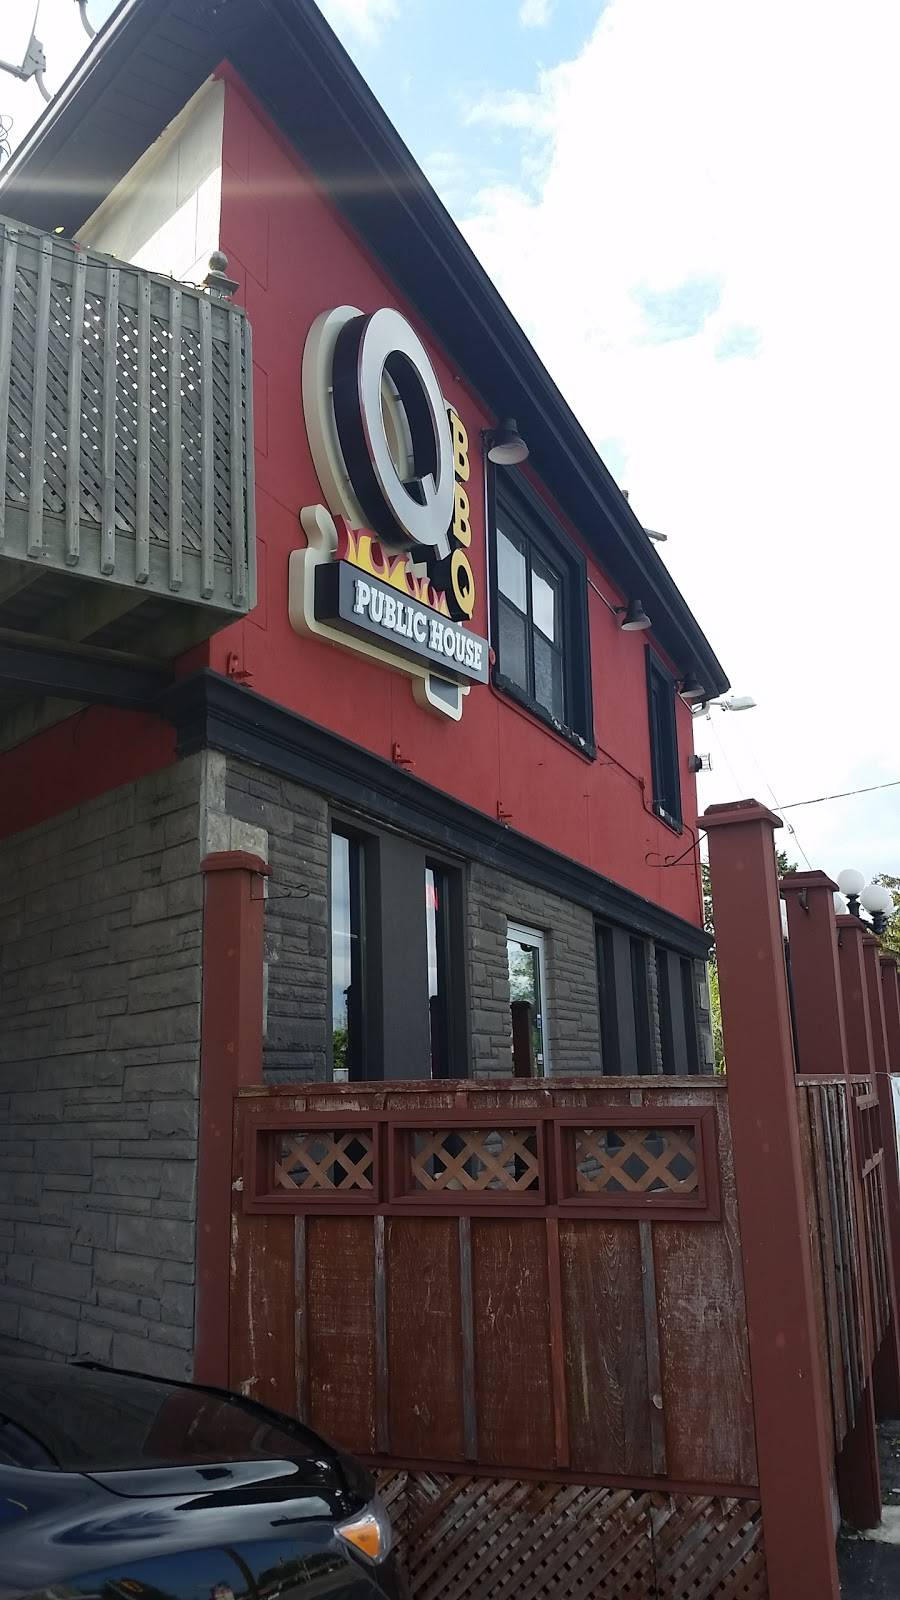 Q BBQ Public House | restaurant | 164 Beverly St, Cambridge, ON N1R 3Z5, Canada | 5197409860 OR +1 519-740-9860